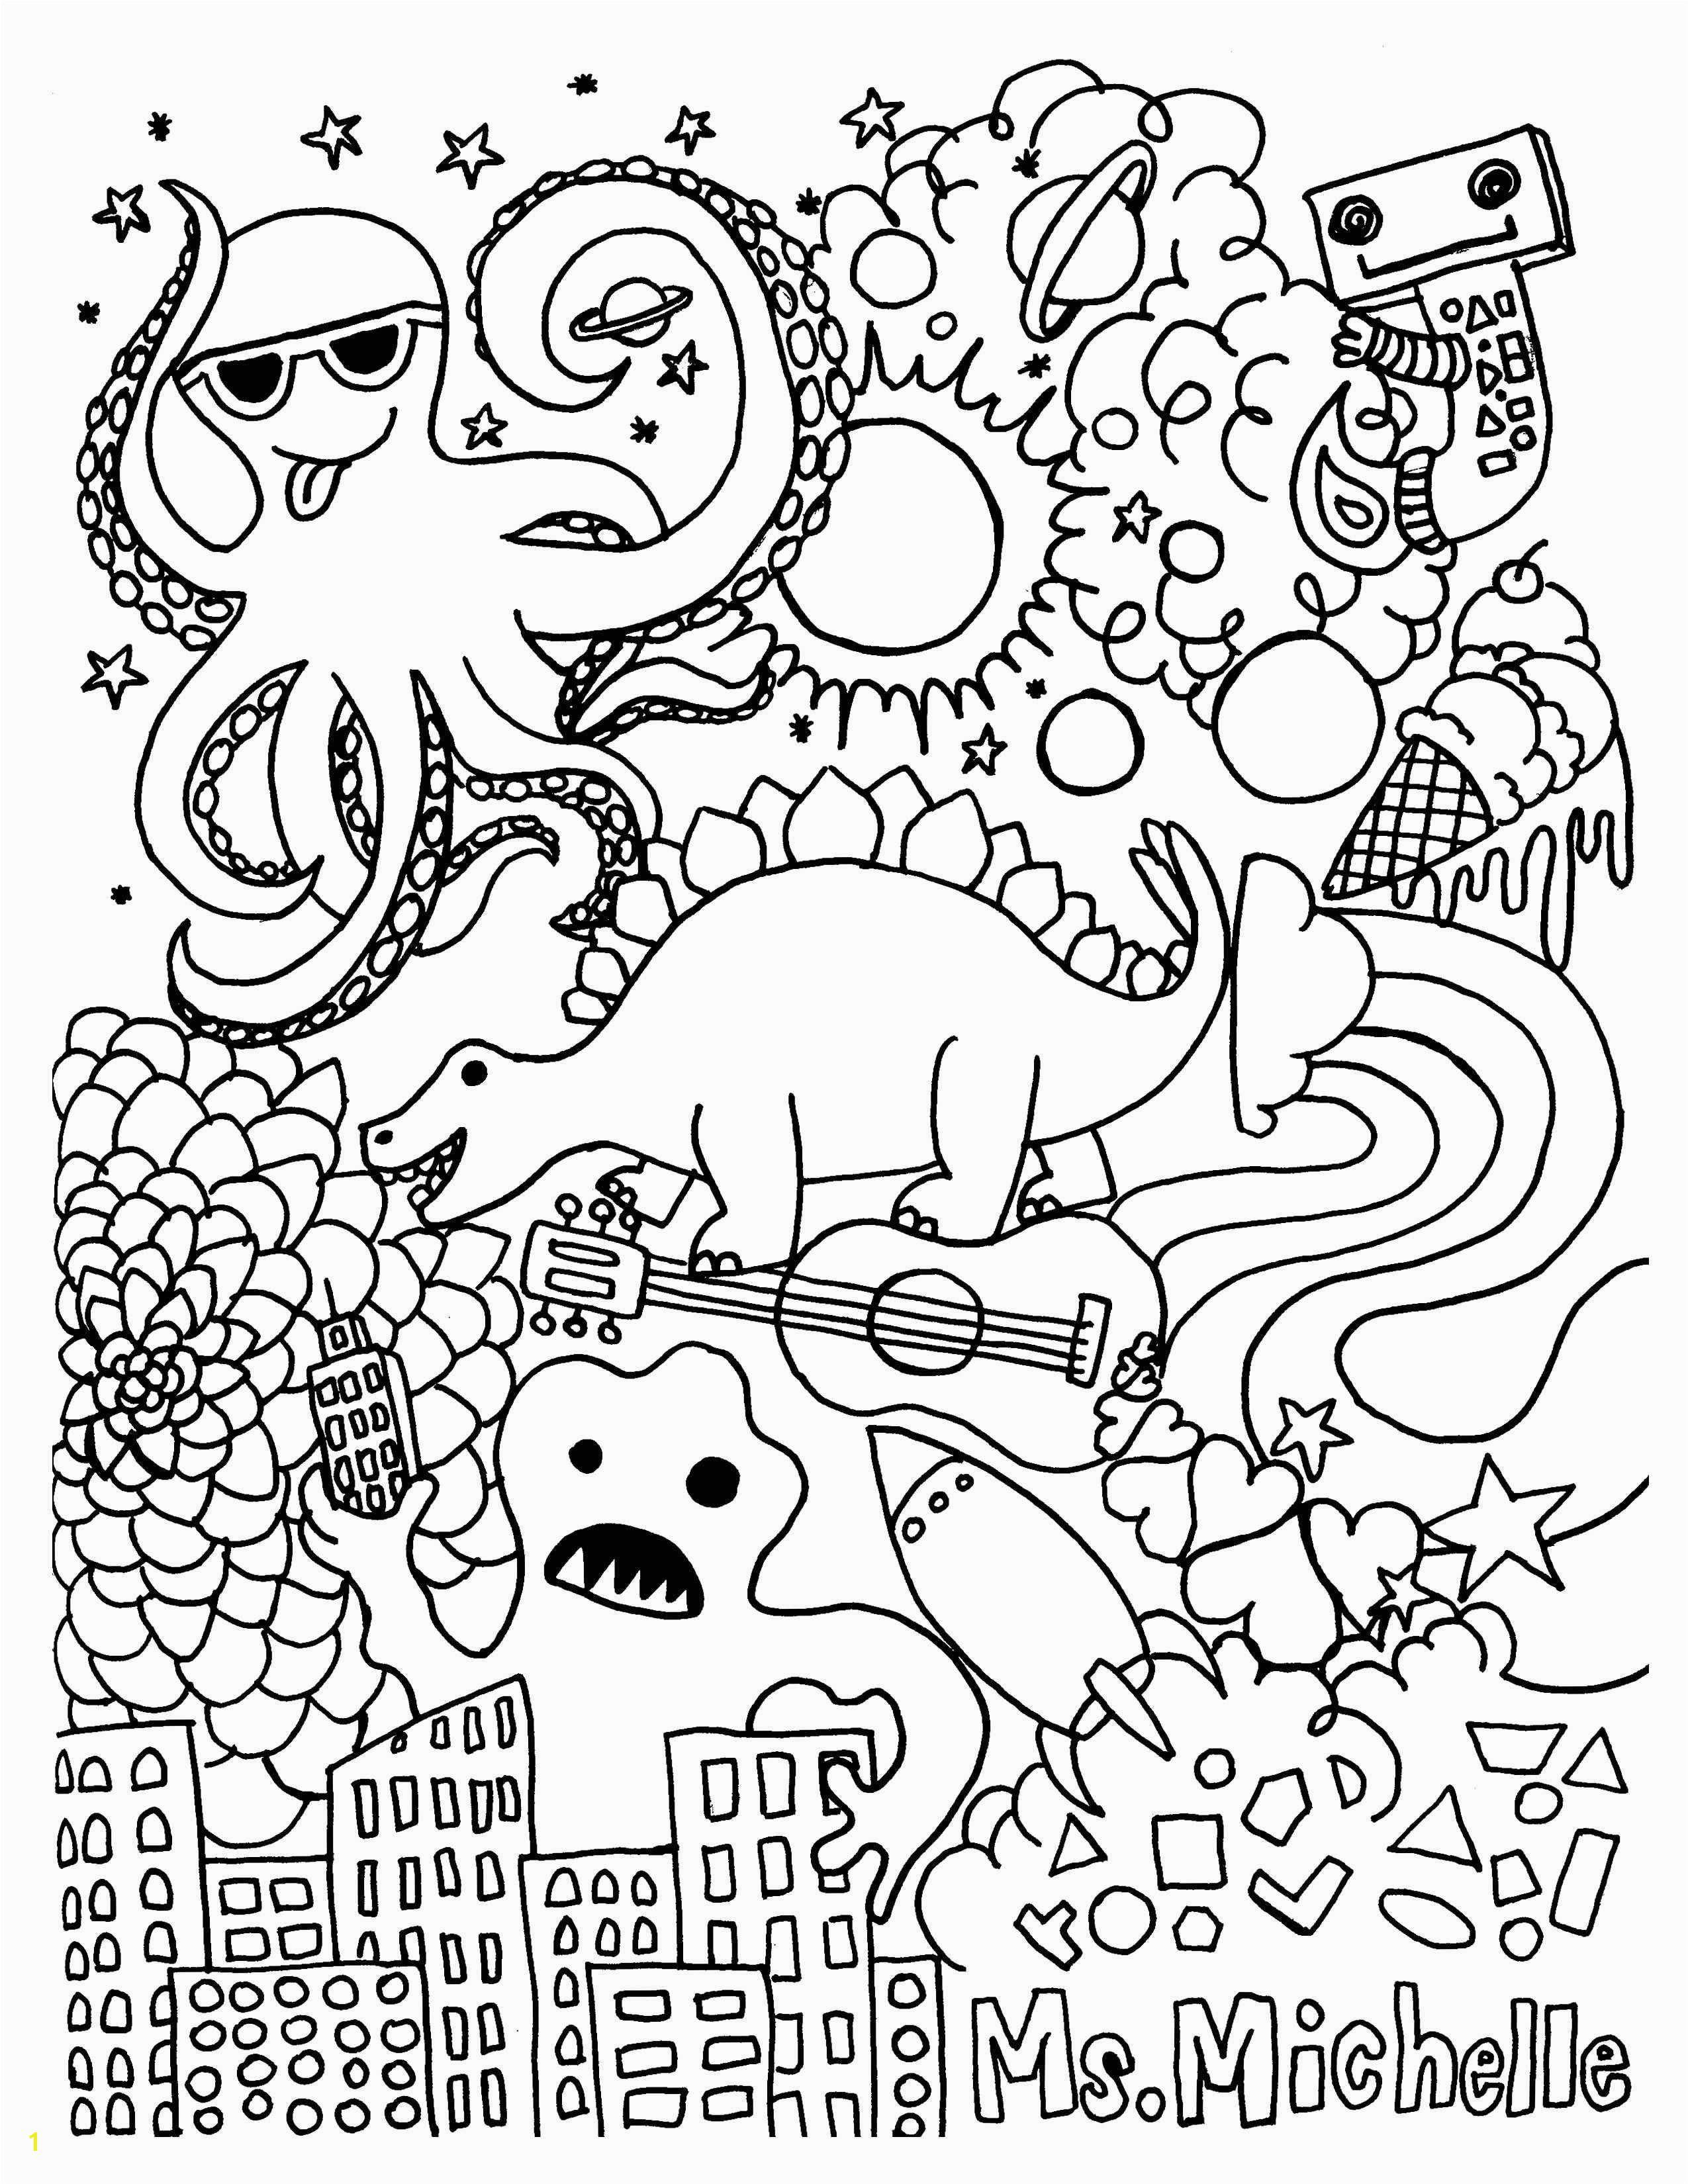 Free Coloring Pages Bible Awesome Free Coloring Pages For Halloween Unique Best Coloring Page Adult Od